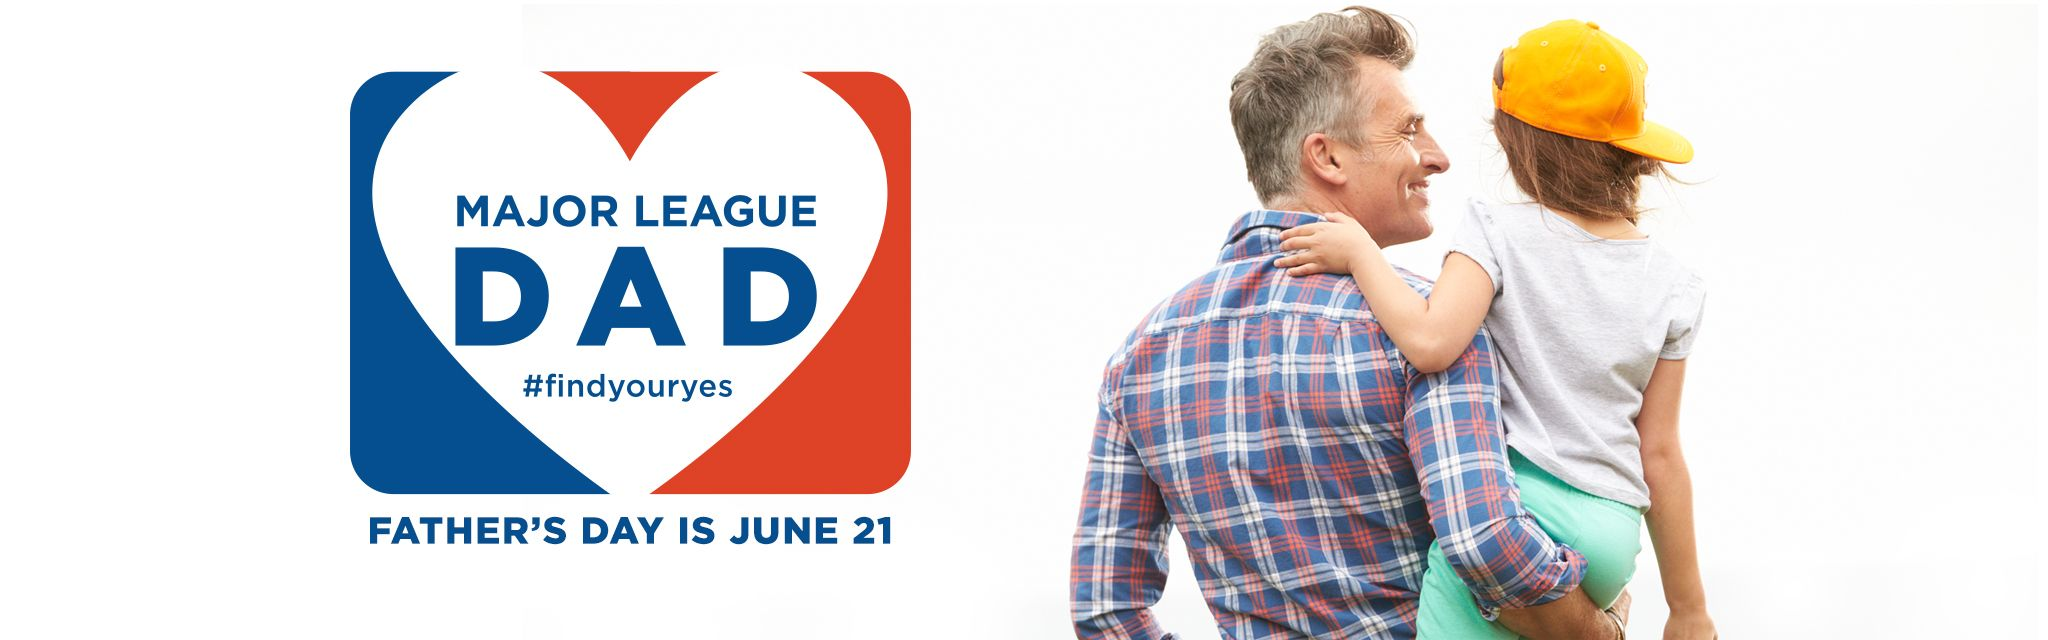 Major League Dad #findyouryes Father's Day is June 21